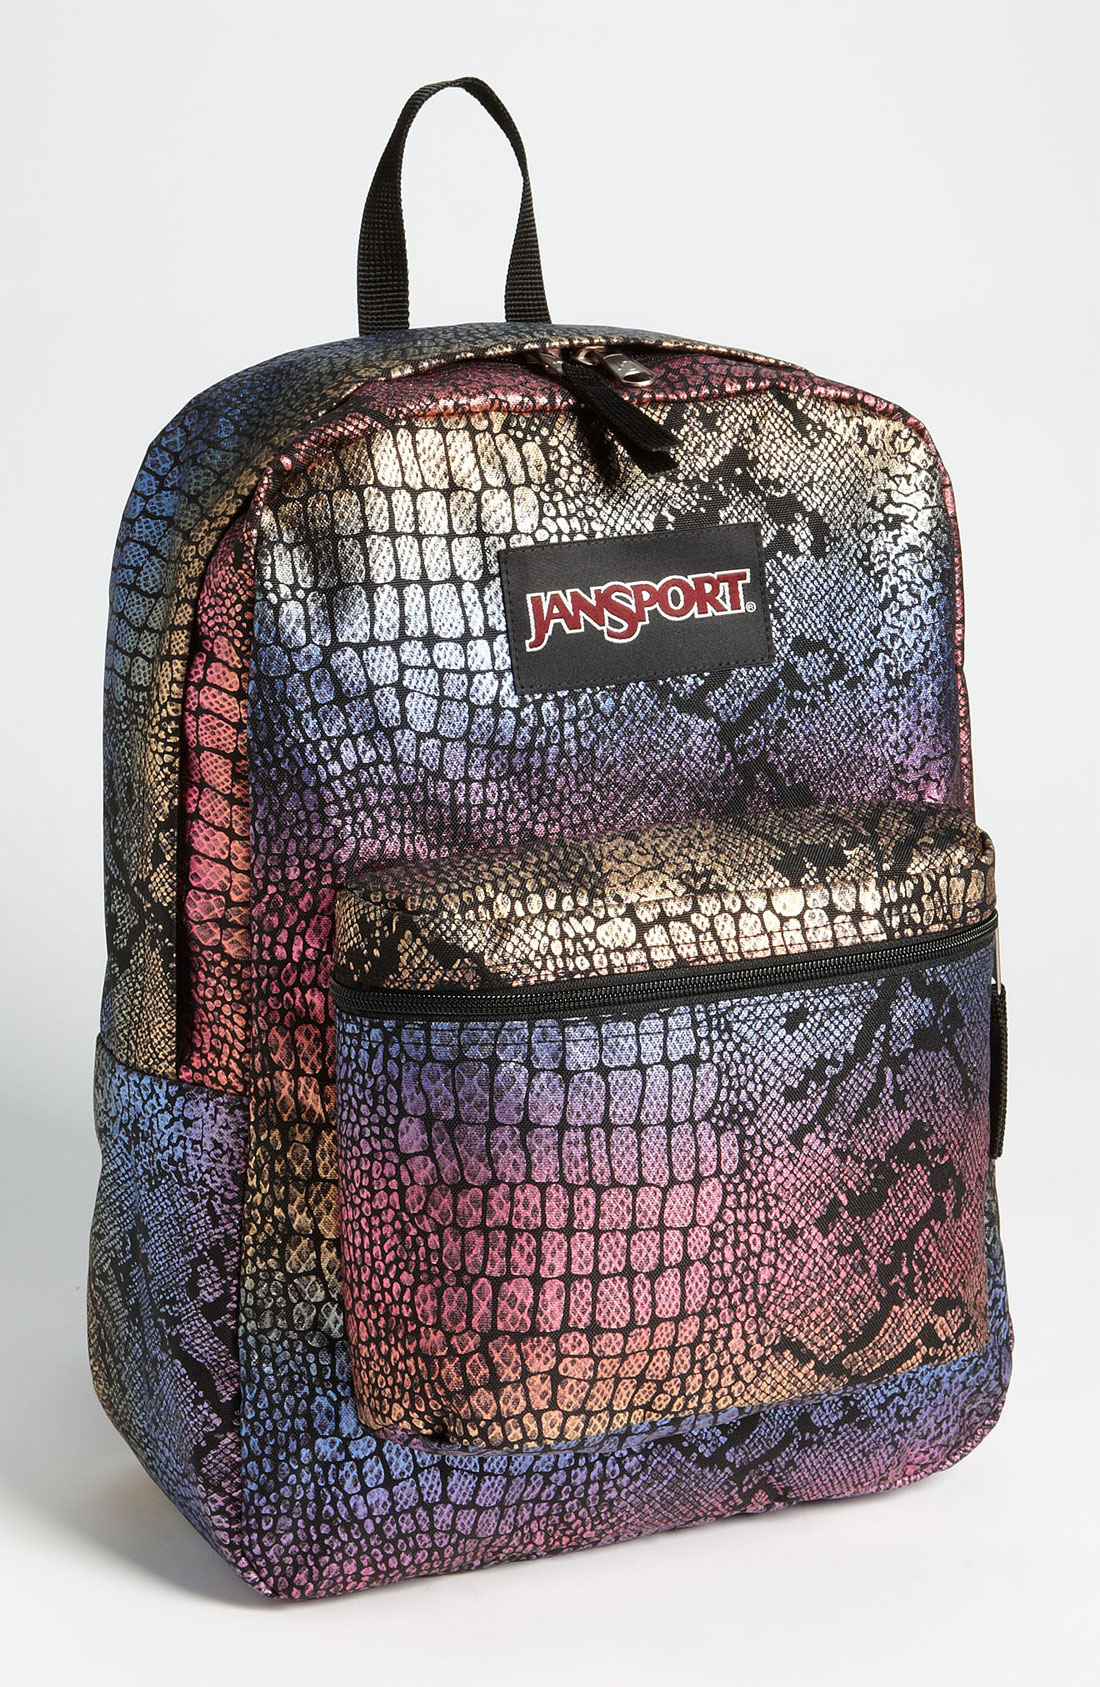 Jansport Clear Backpacks ngD4oKk1